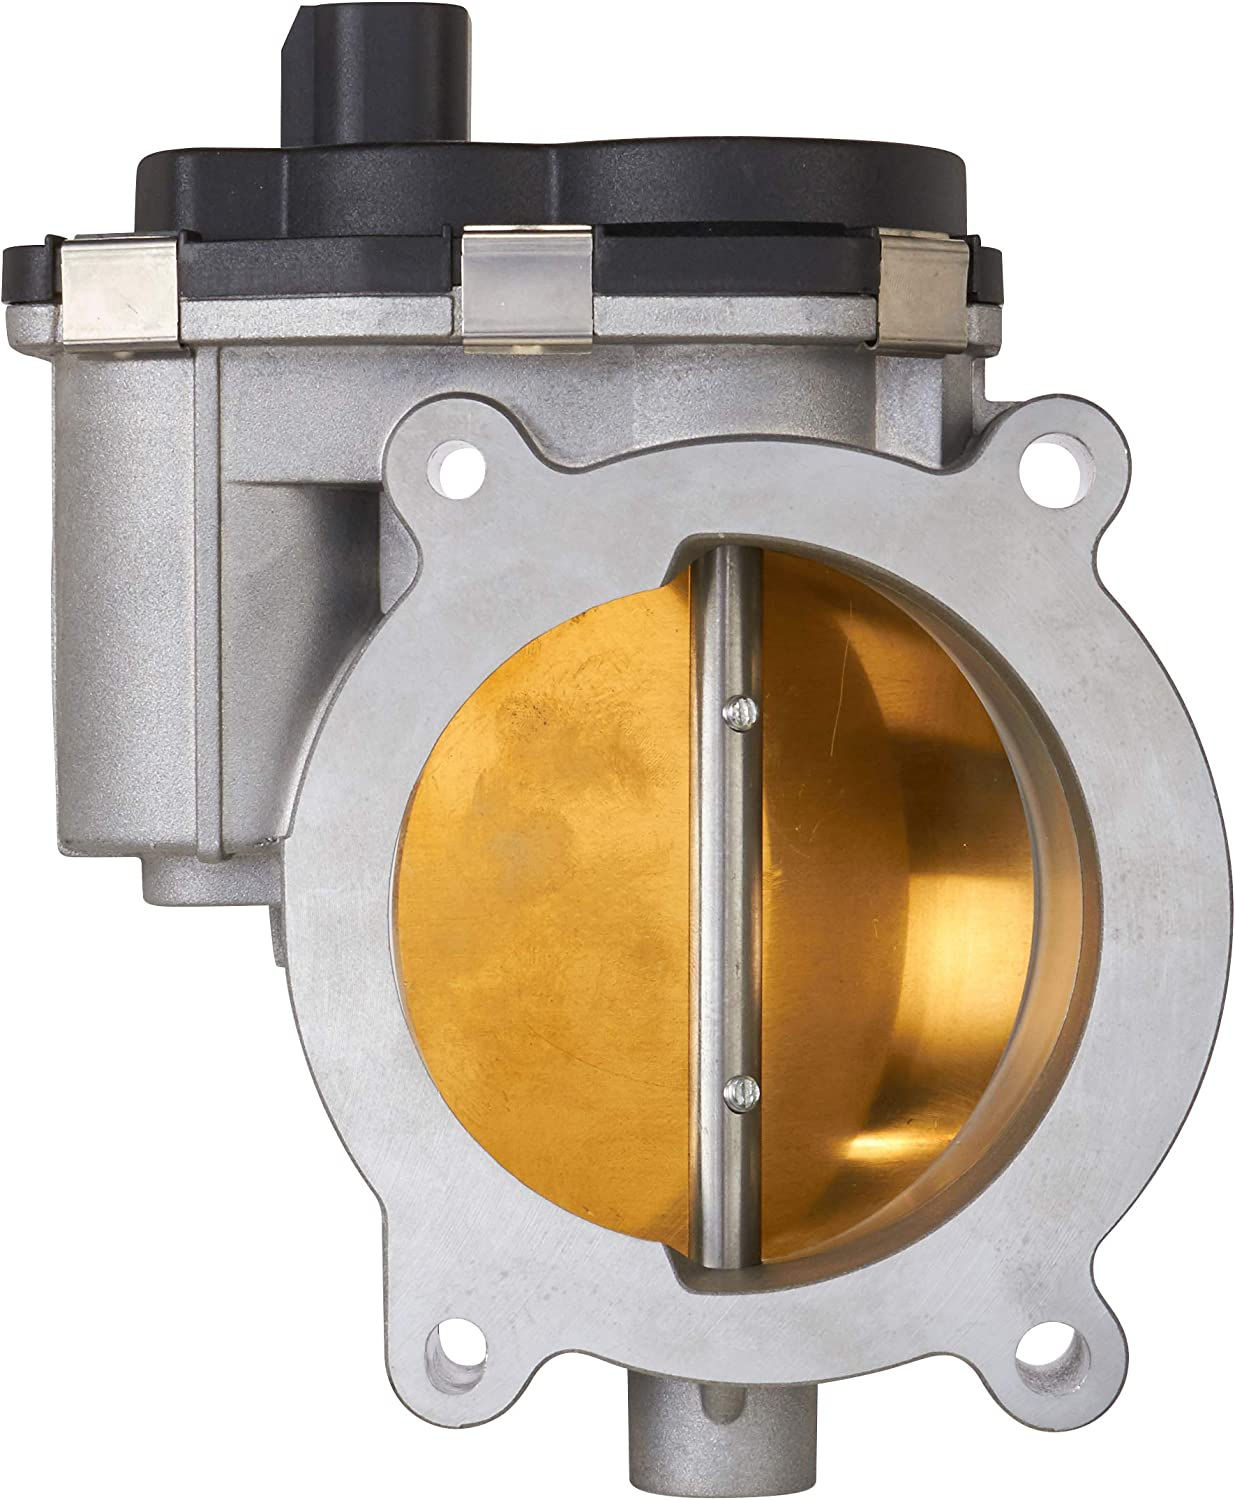 Fuel Injection Throttle Body Spectra TB1006